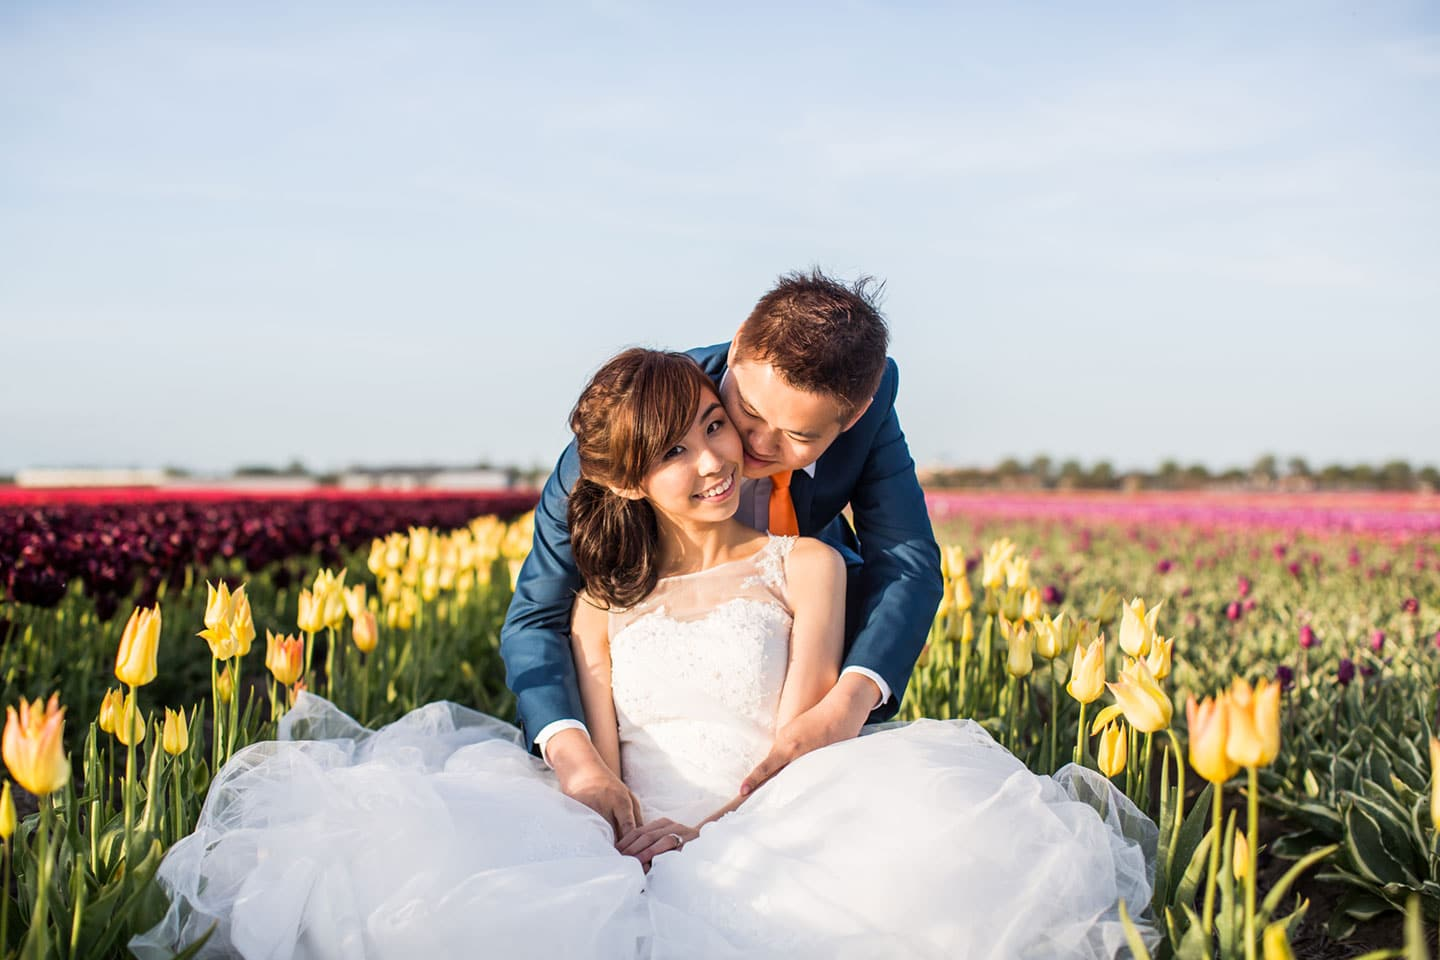 26-pre-wedding-photoshoot-tulips-Keukenhof